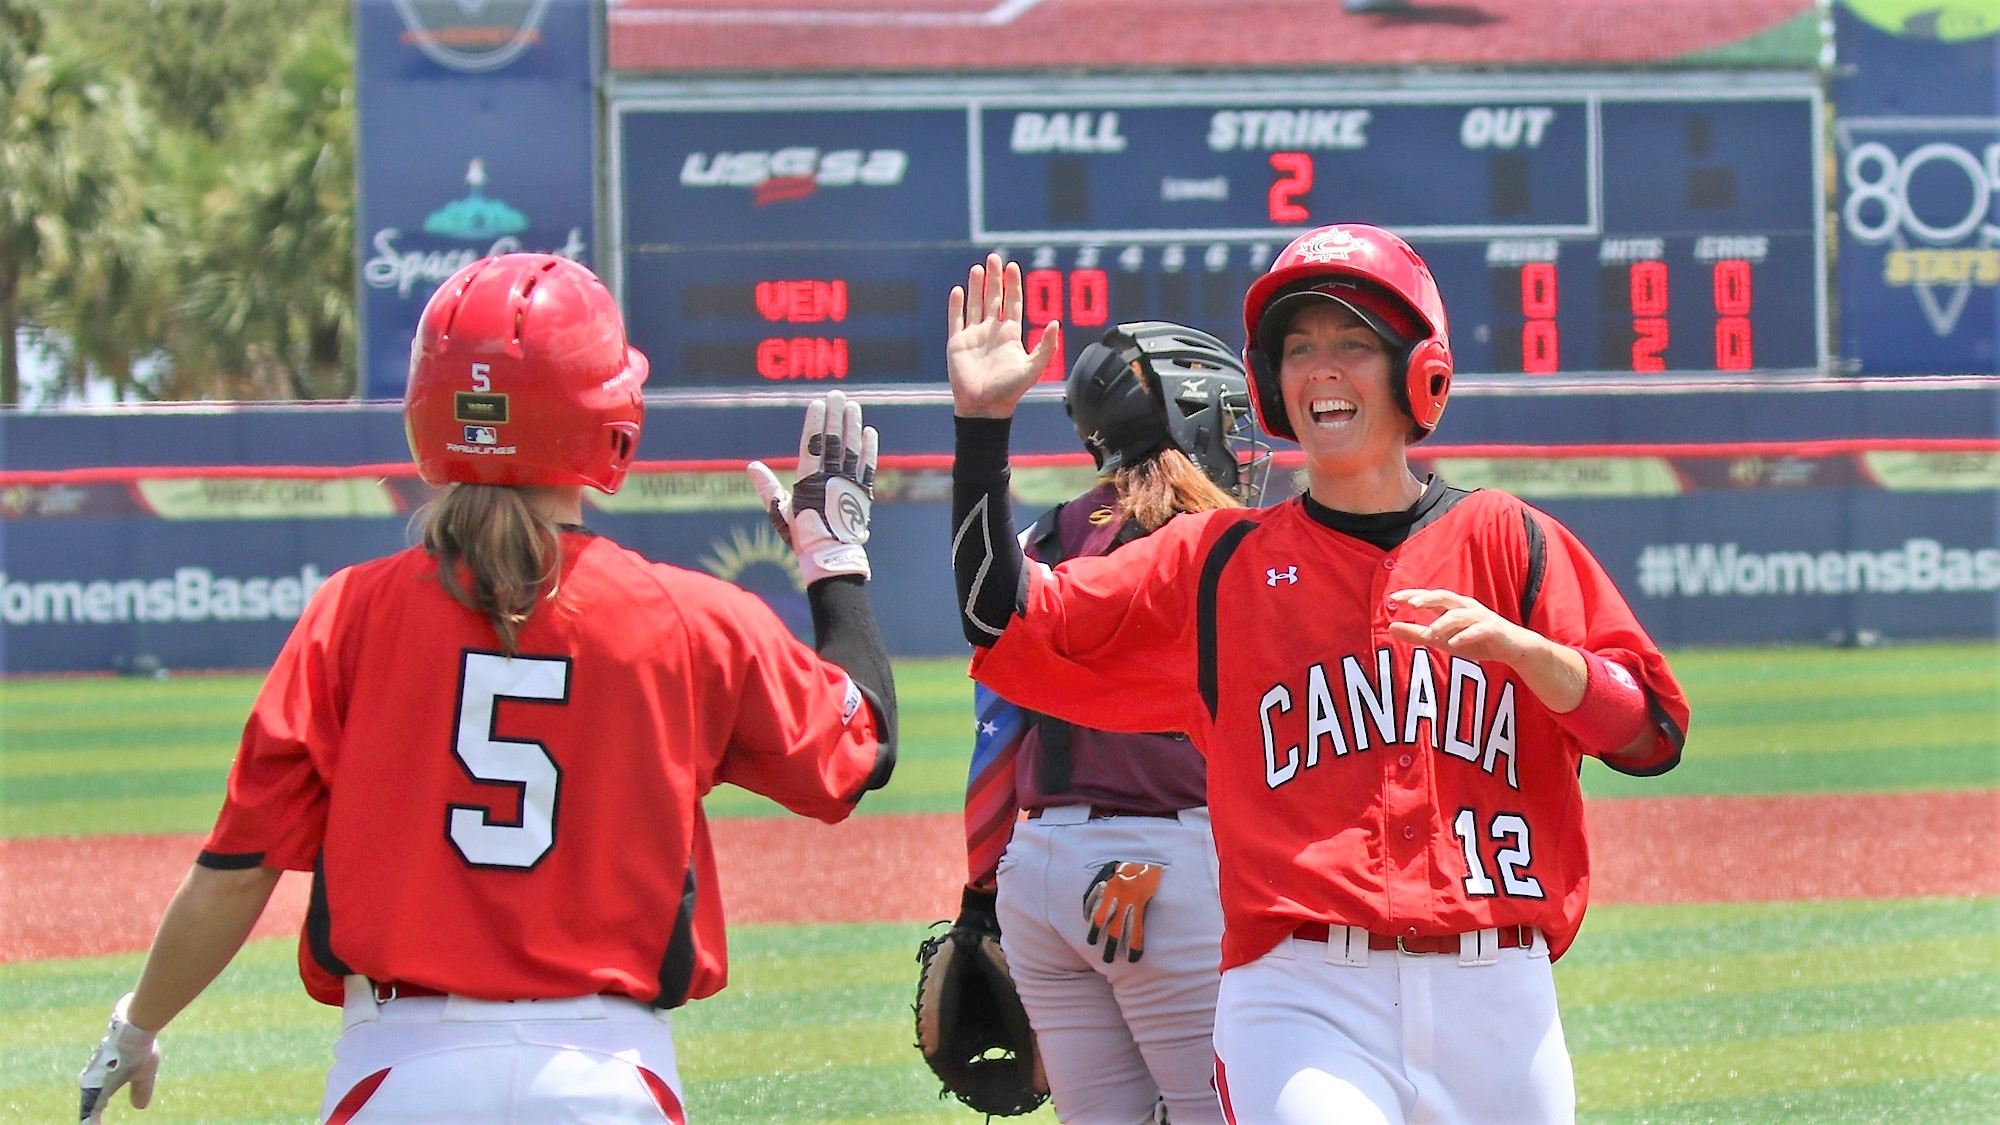 Canada celebration after taking the lead